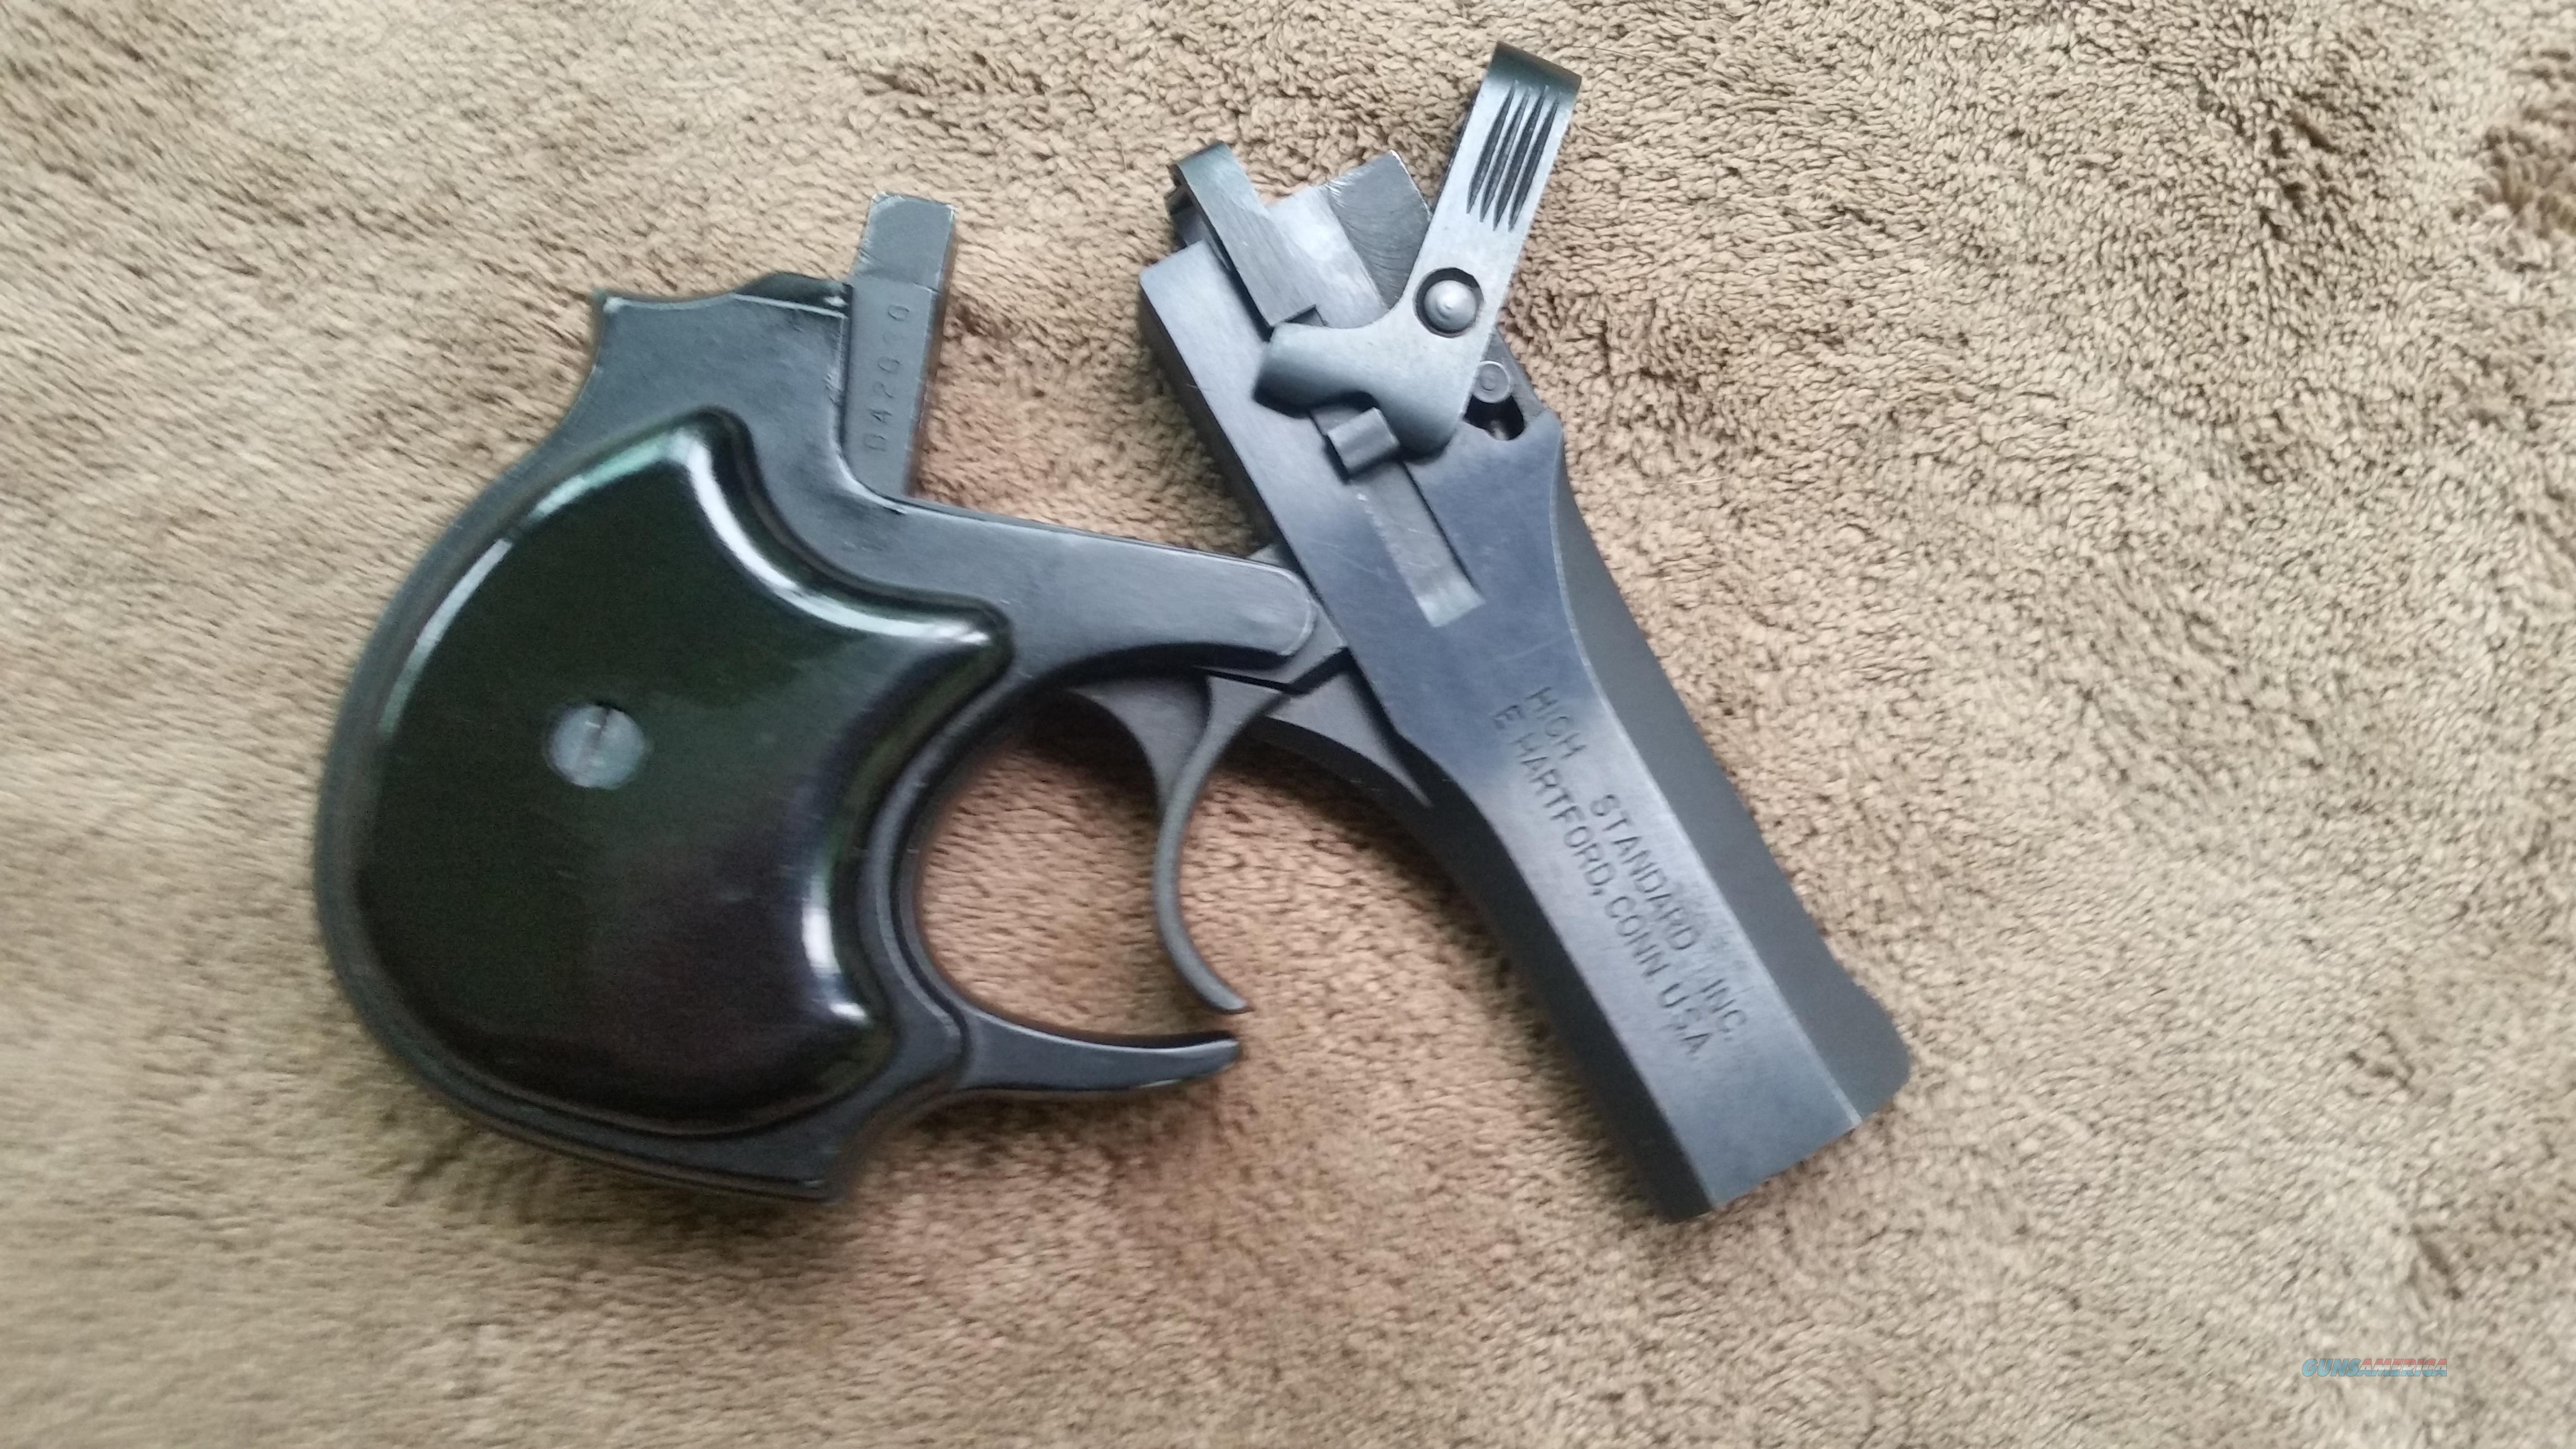 High Standard Derringer in 22 Mag.   Guns > Pistols > High Standard Pistols